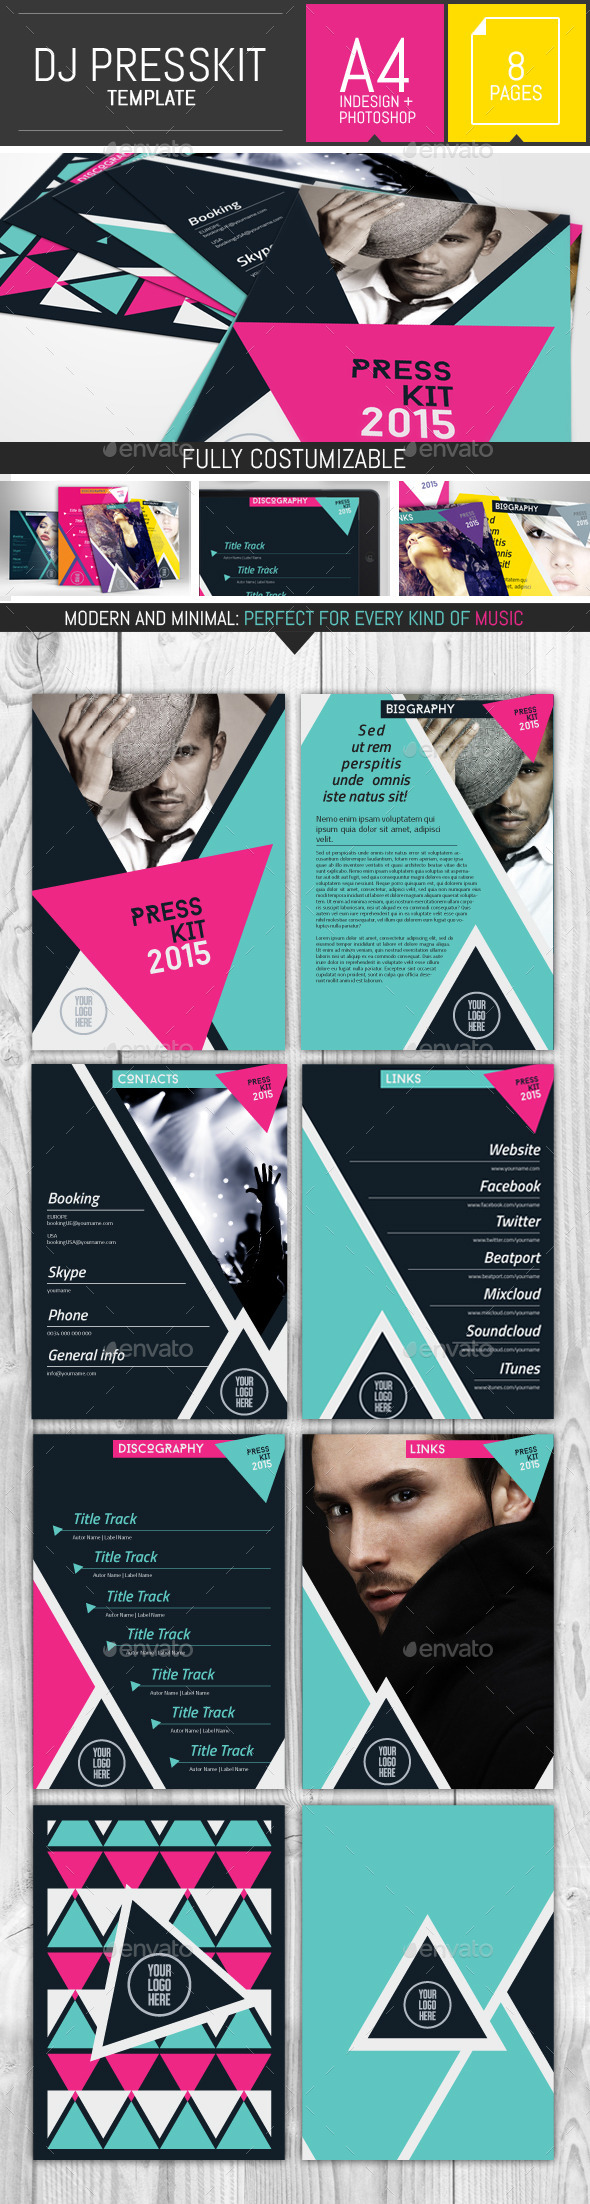 Geometric Dj and Musician Presskit Template by DogmaDesign ...